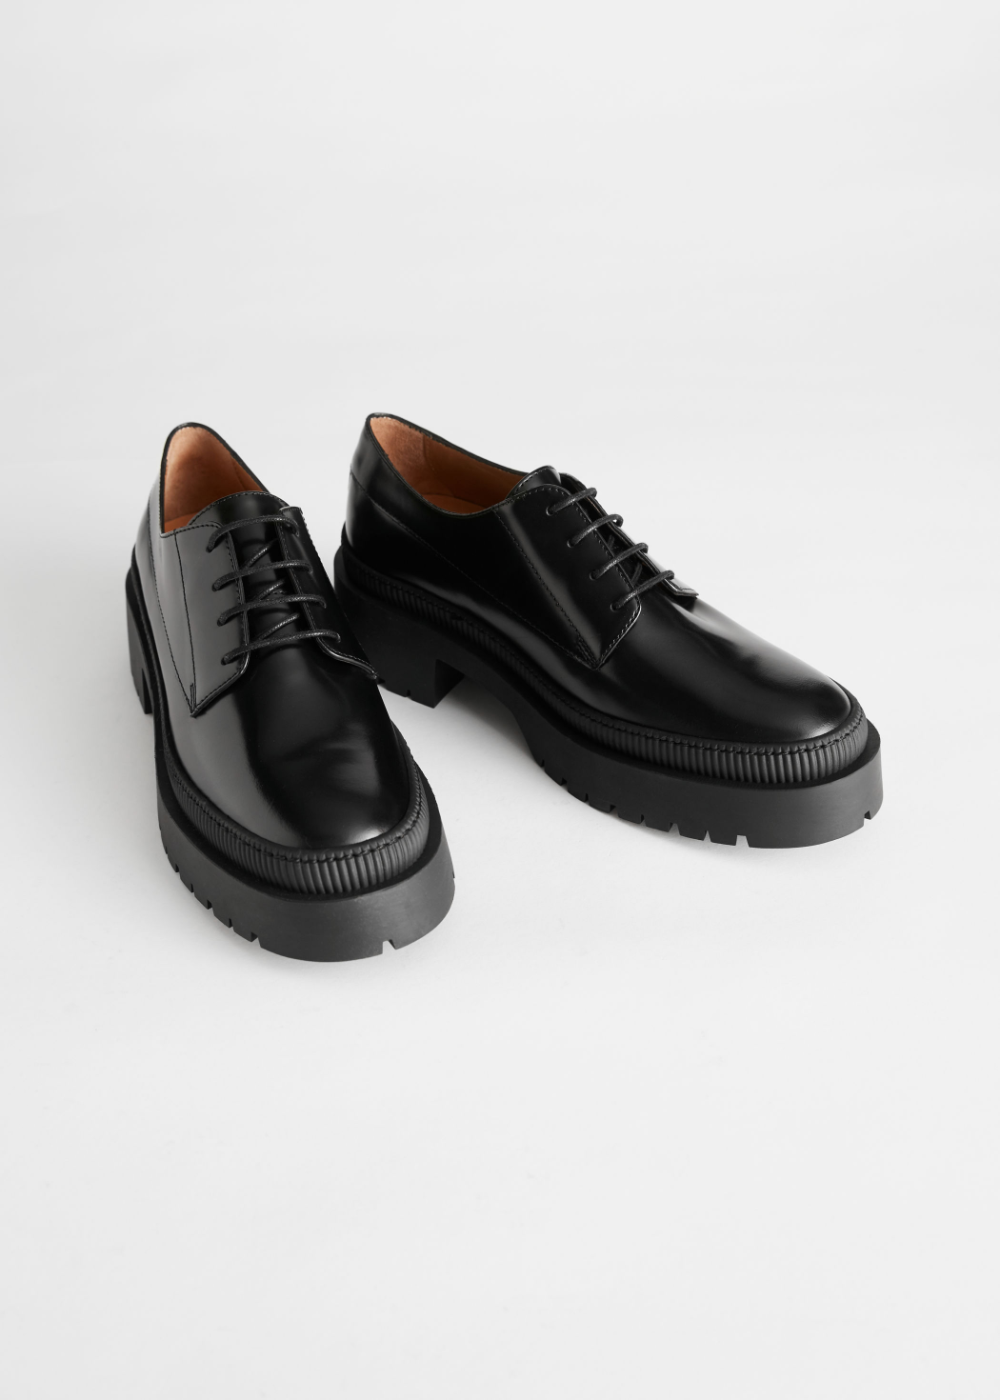 Top 18 90s Fashion Trends For Men: Chunky Heeled Leather Oxfords In 2020